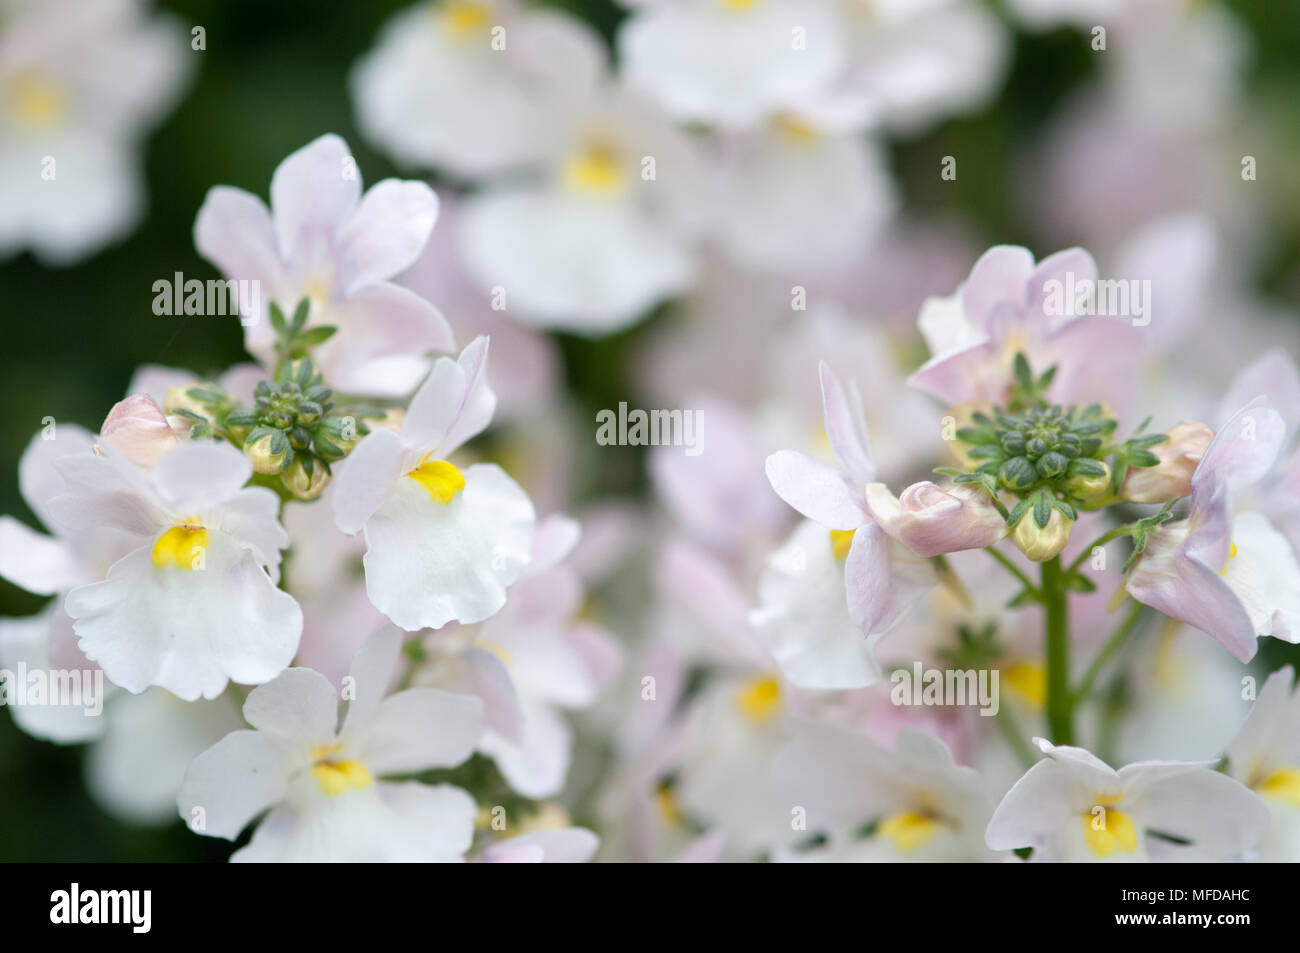 Delicate pink flowers summer flowering perennial garden herbaceous close up shot of pretty white and pink herbaceous perennial stock image mightylinksfo